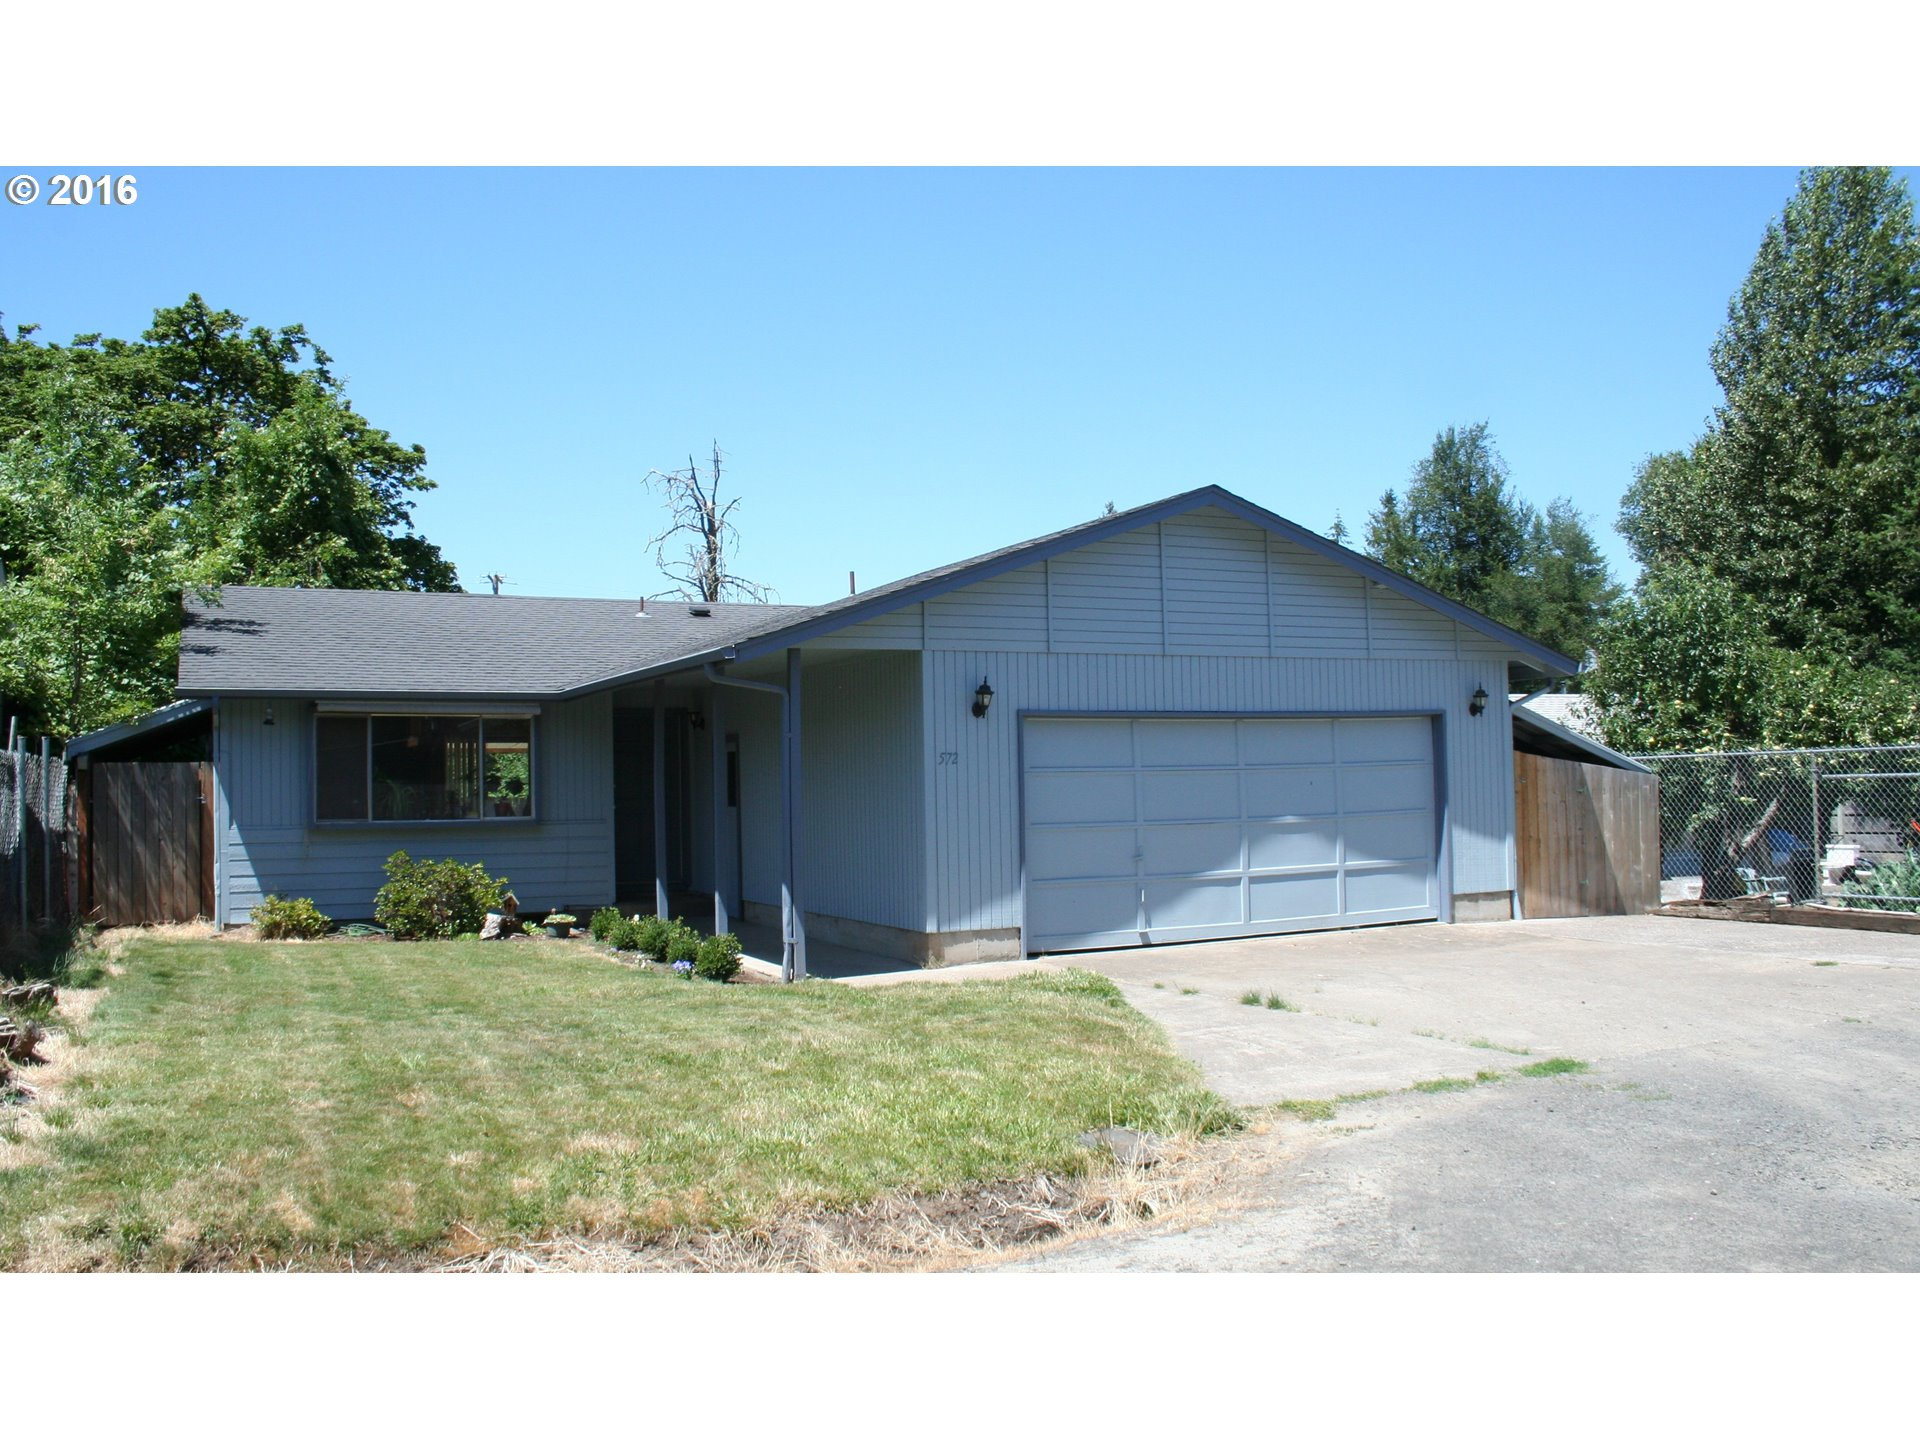 572 S 47TH PL, Springfield OR 97478